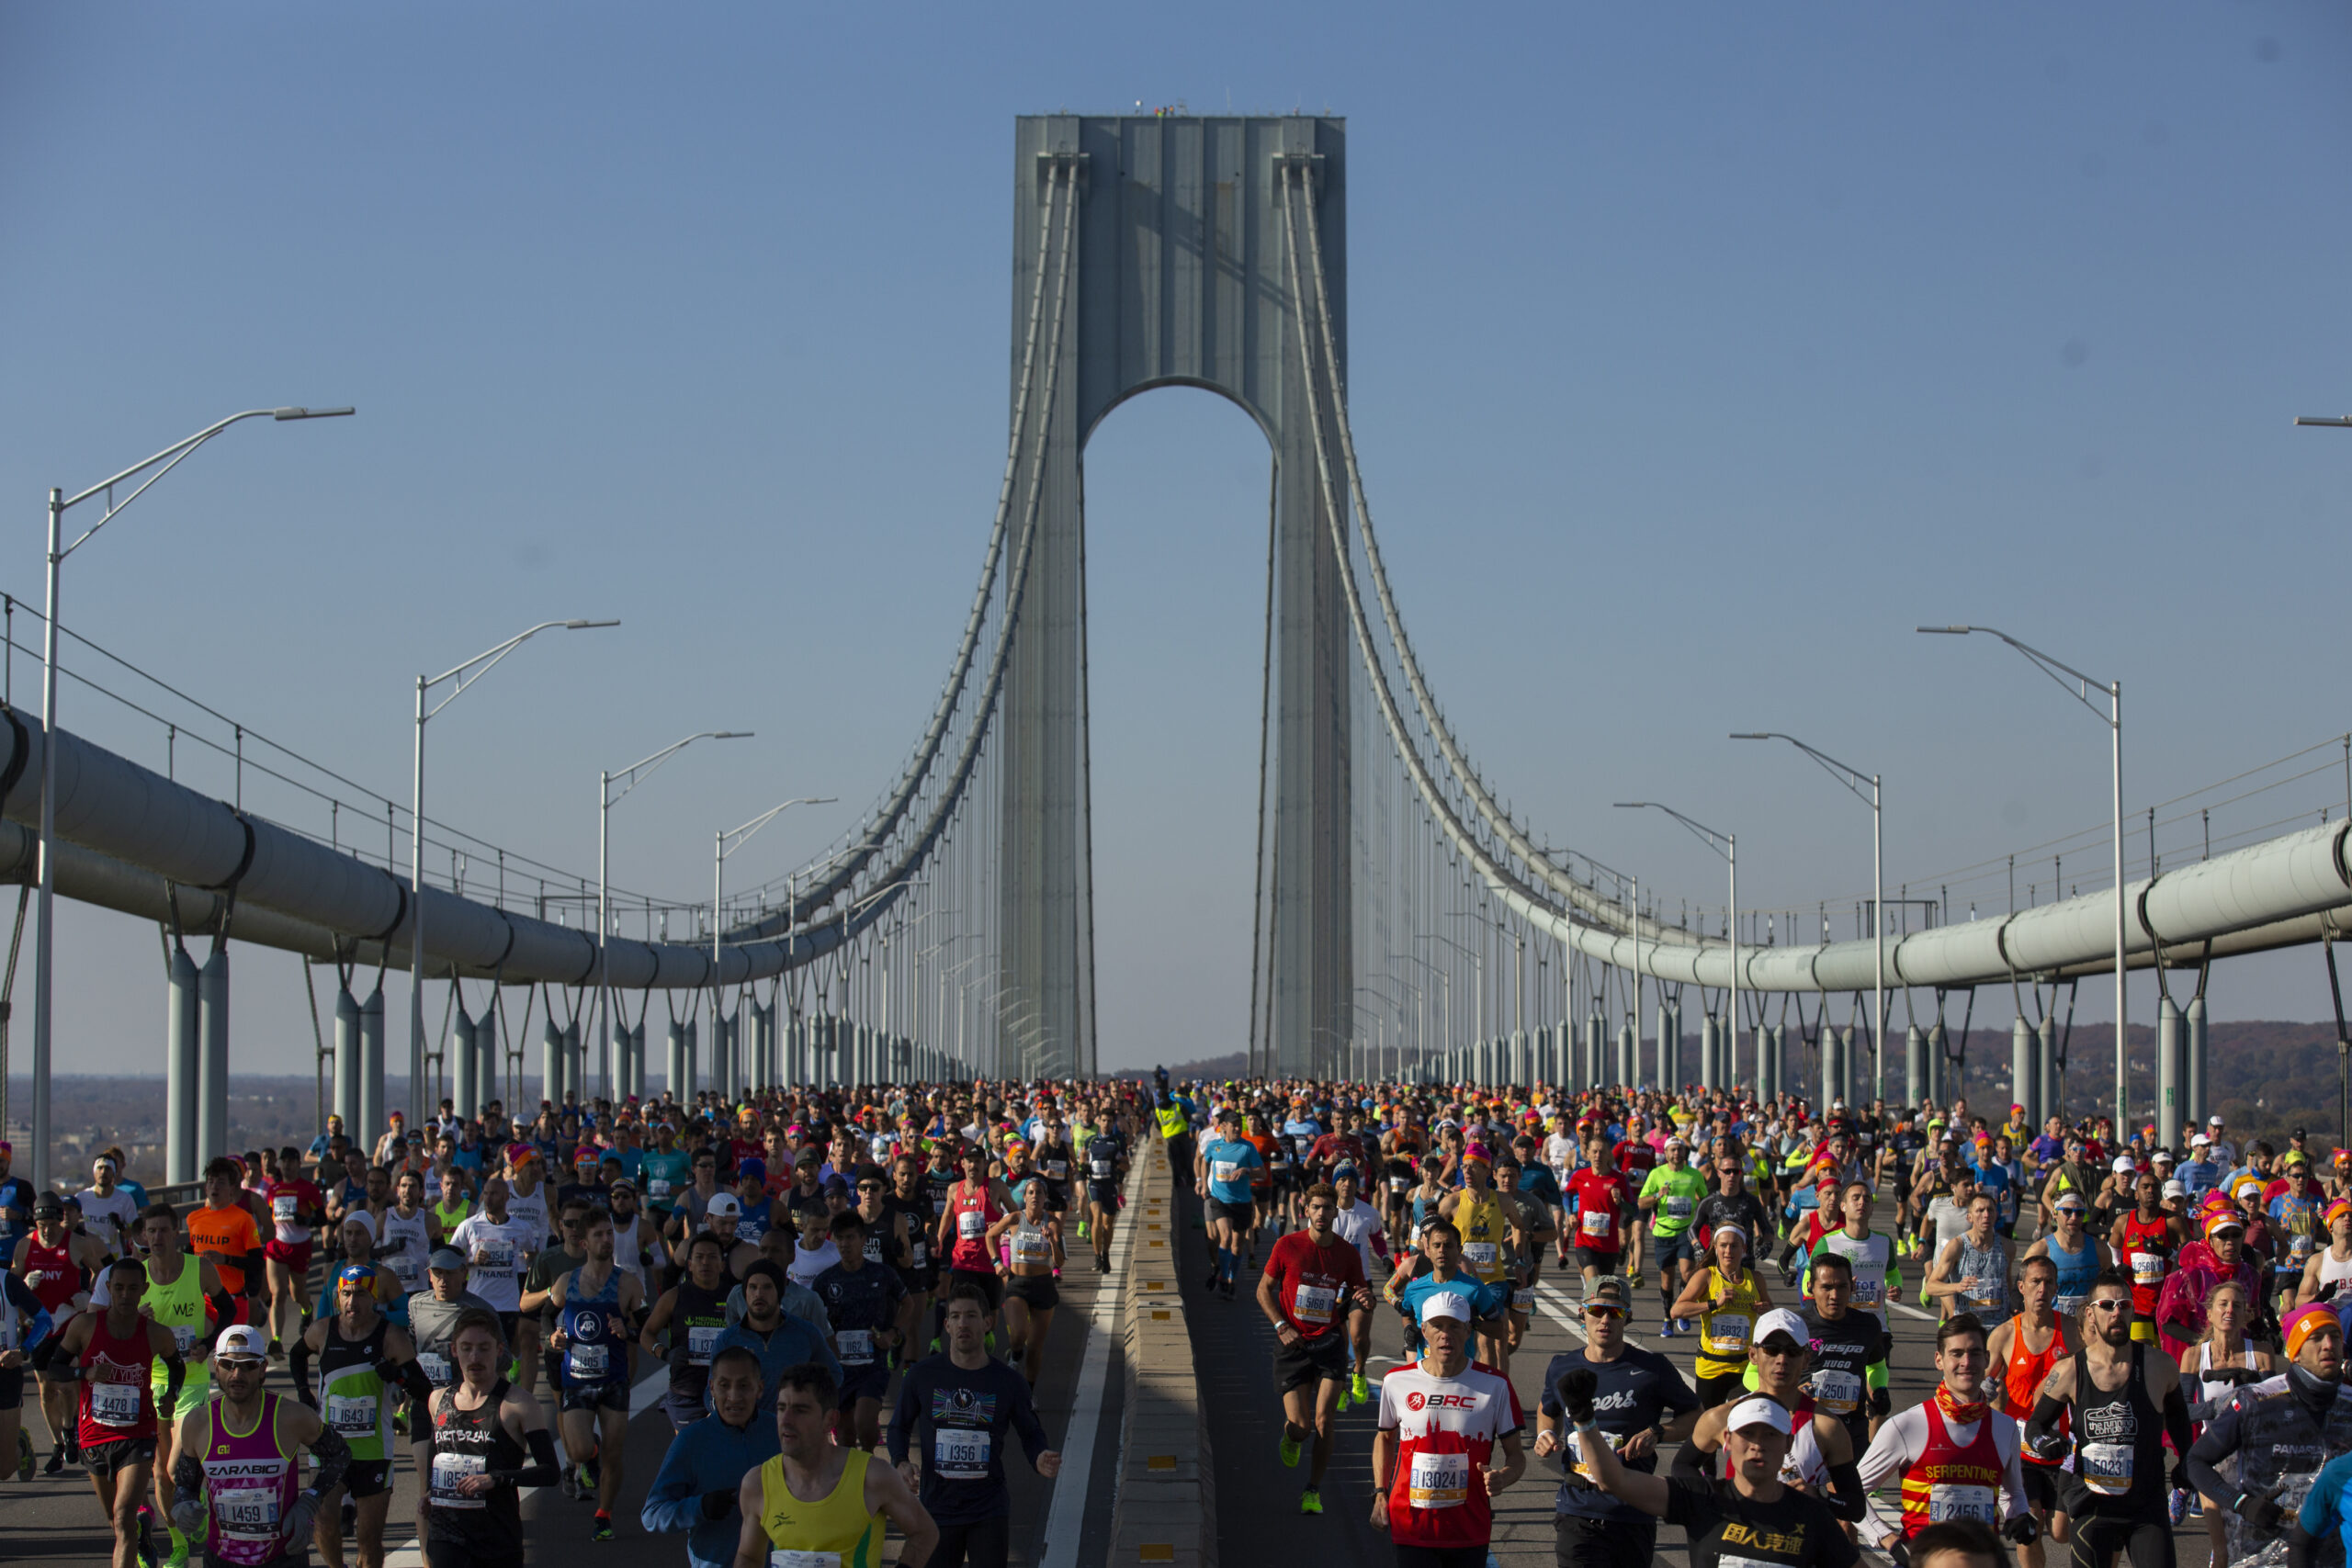 Ben Norman's photo from the end of the Verrazano Bridge shows it crowded with marathon runners